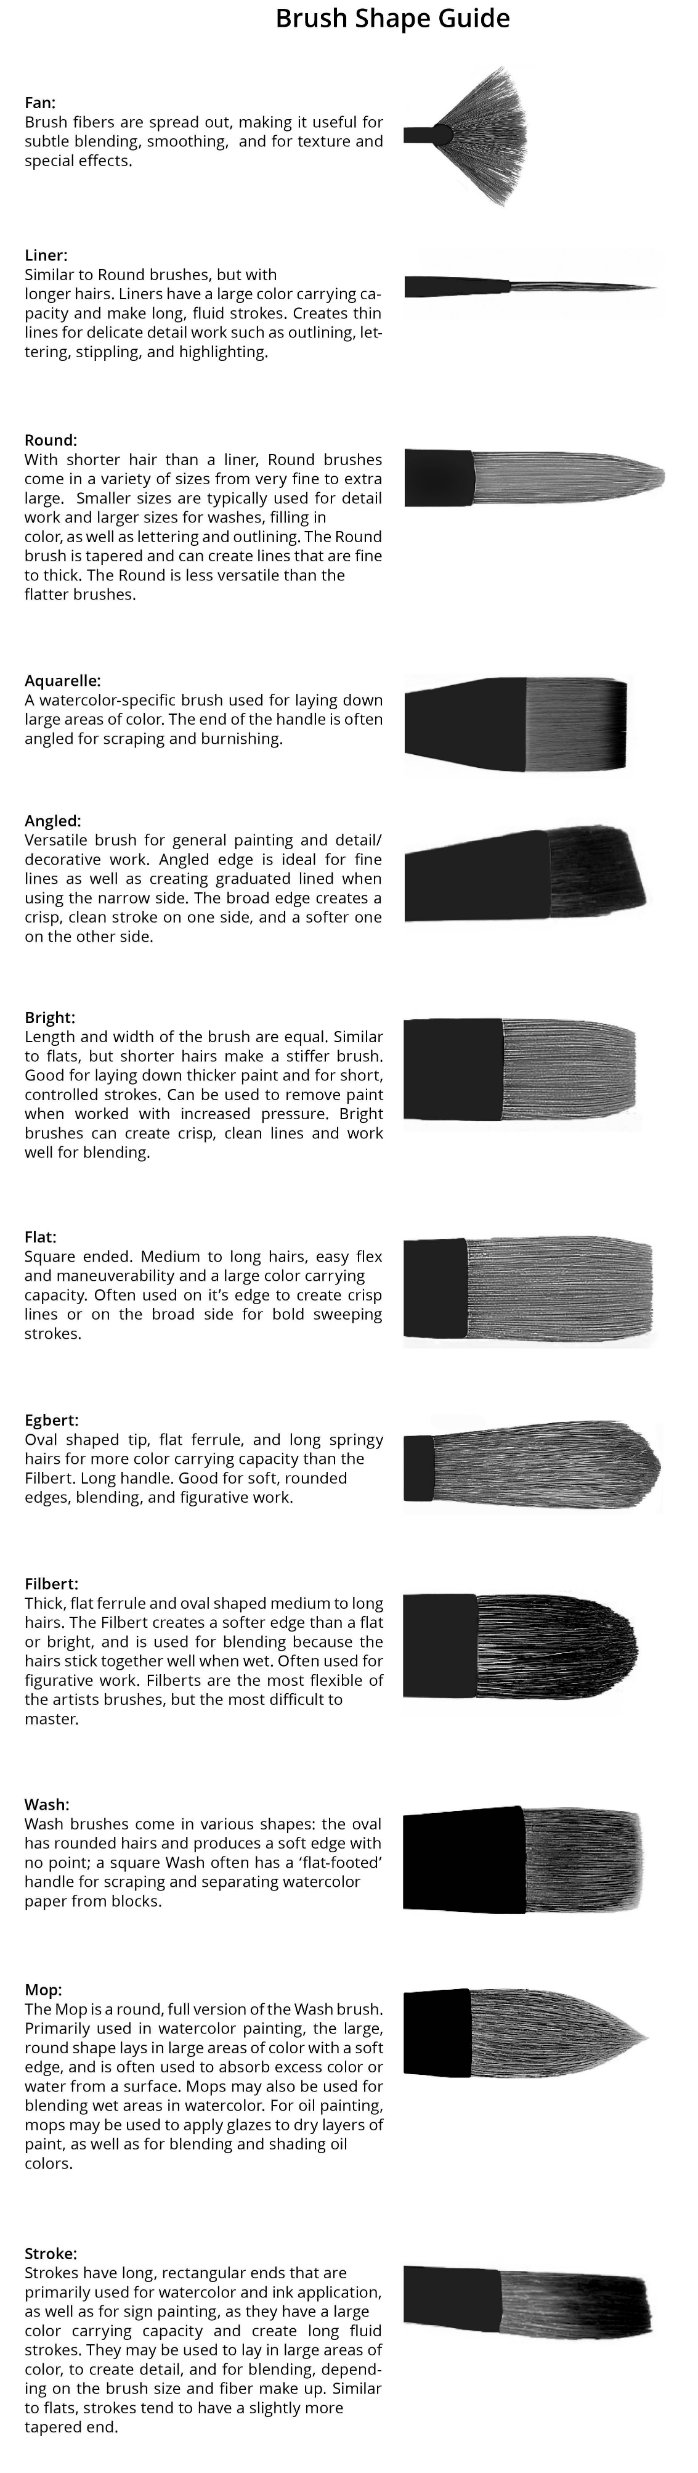 brush-guide.jpg